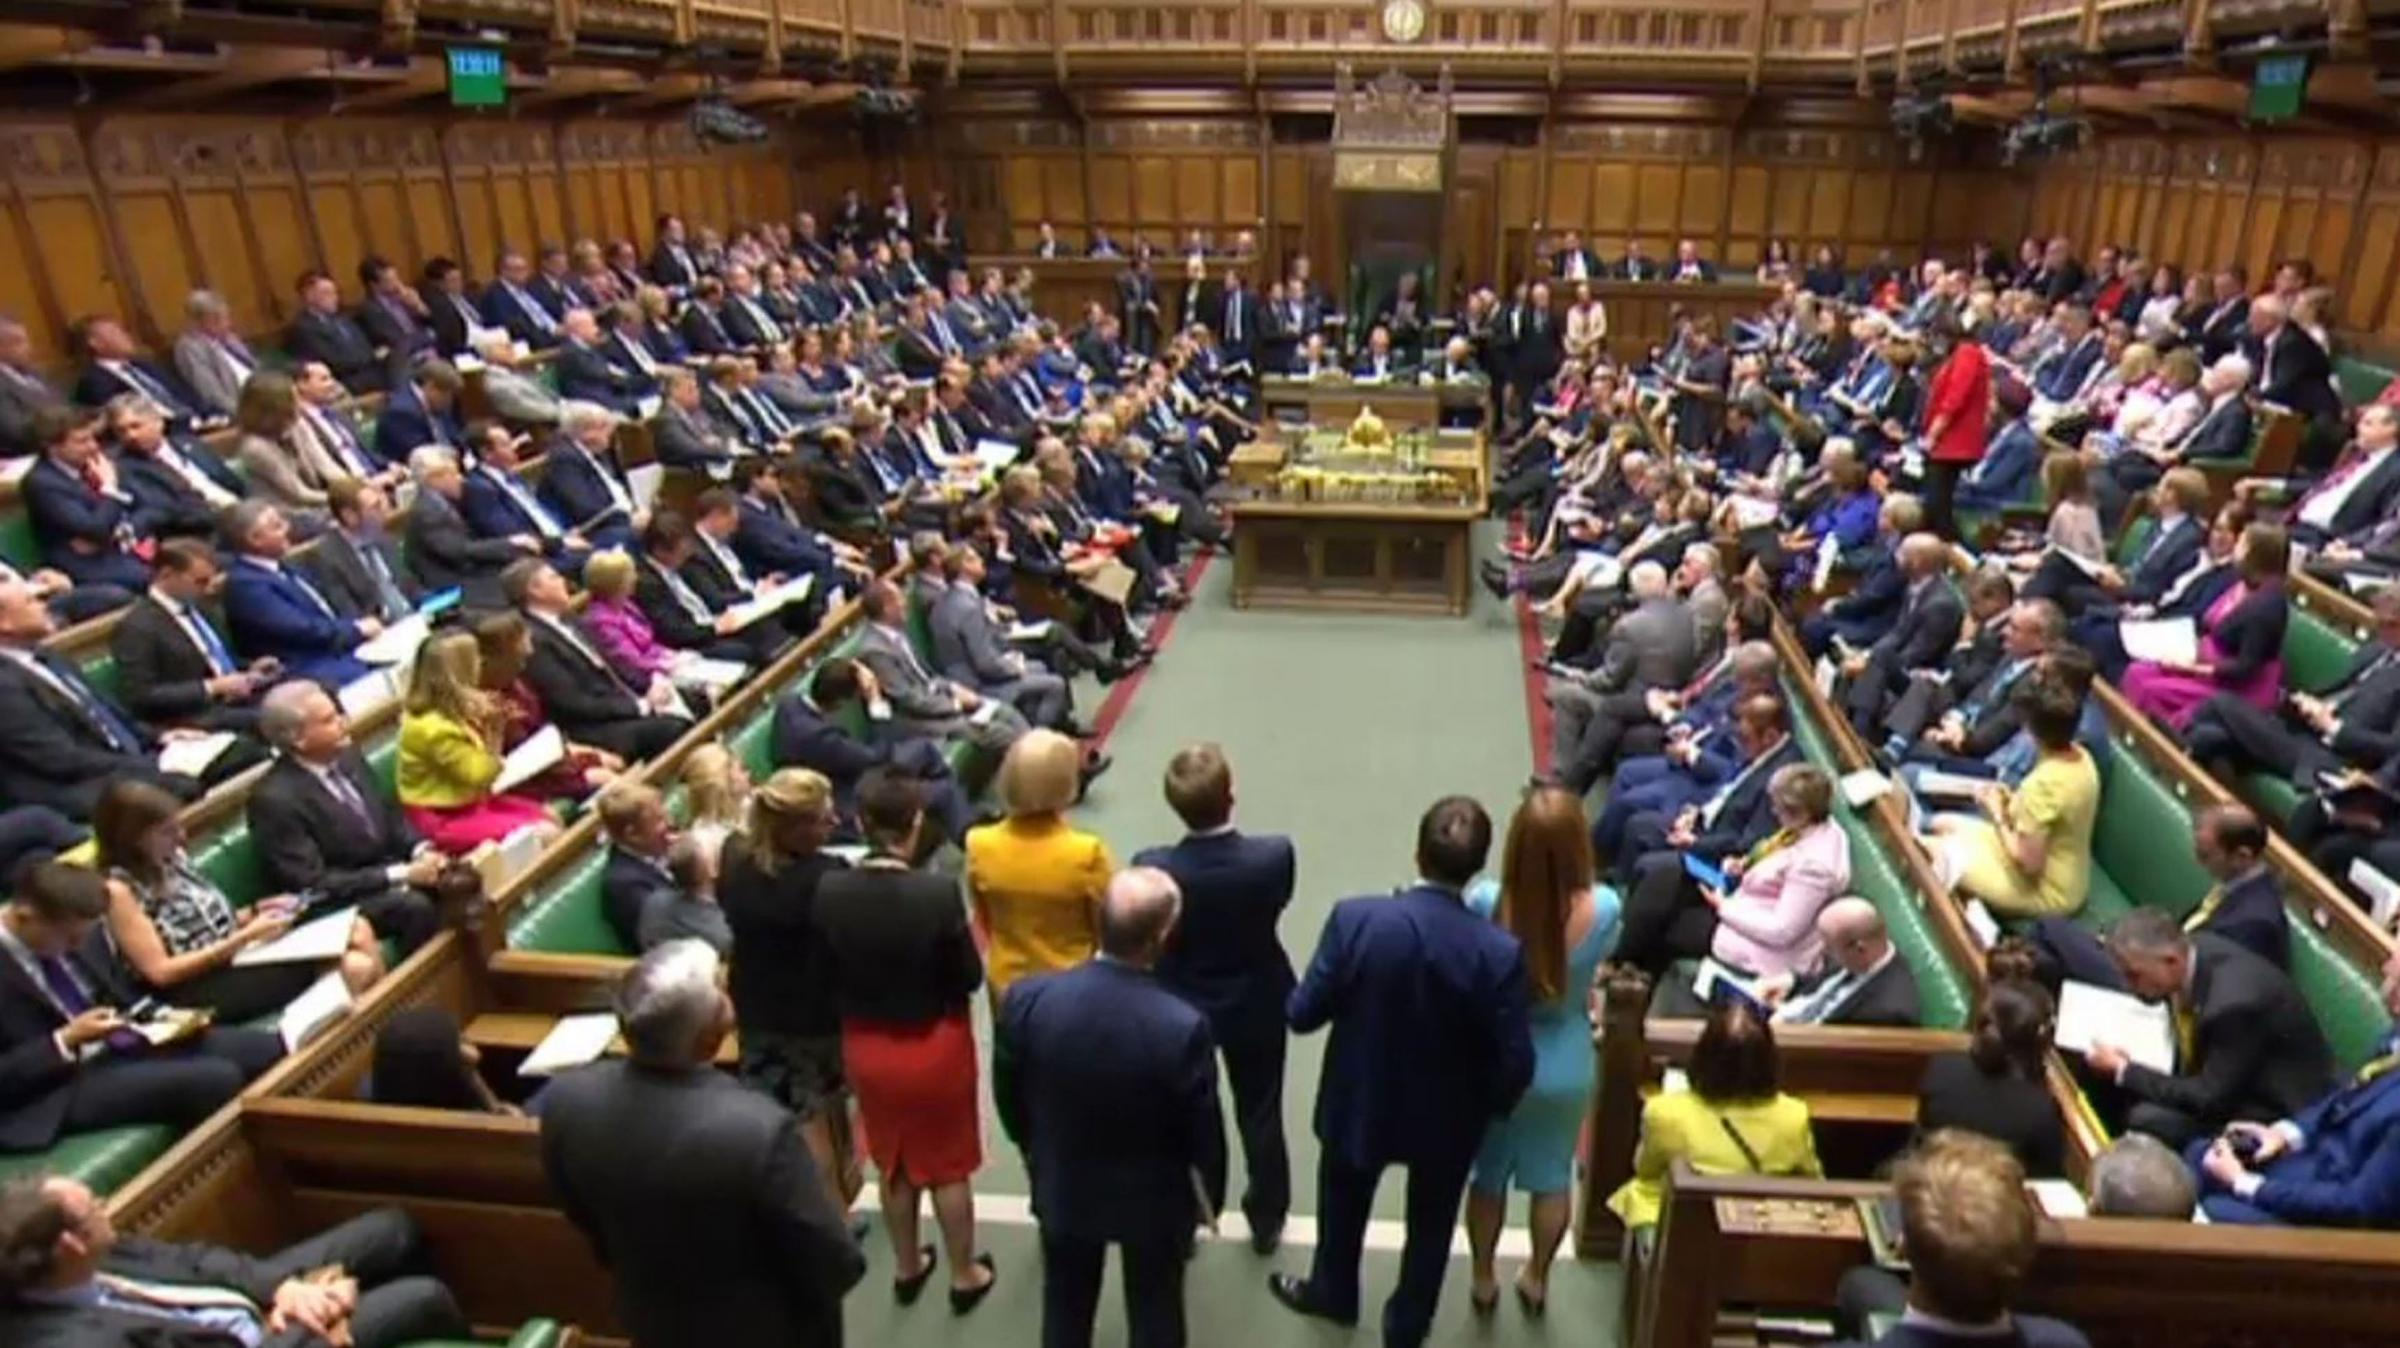 Two major issues related to Scotland were again raised in the House of Commons. Photograph: PA